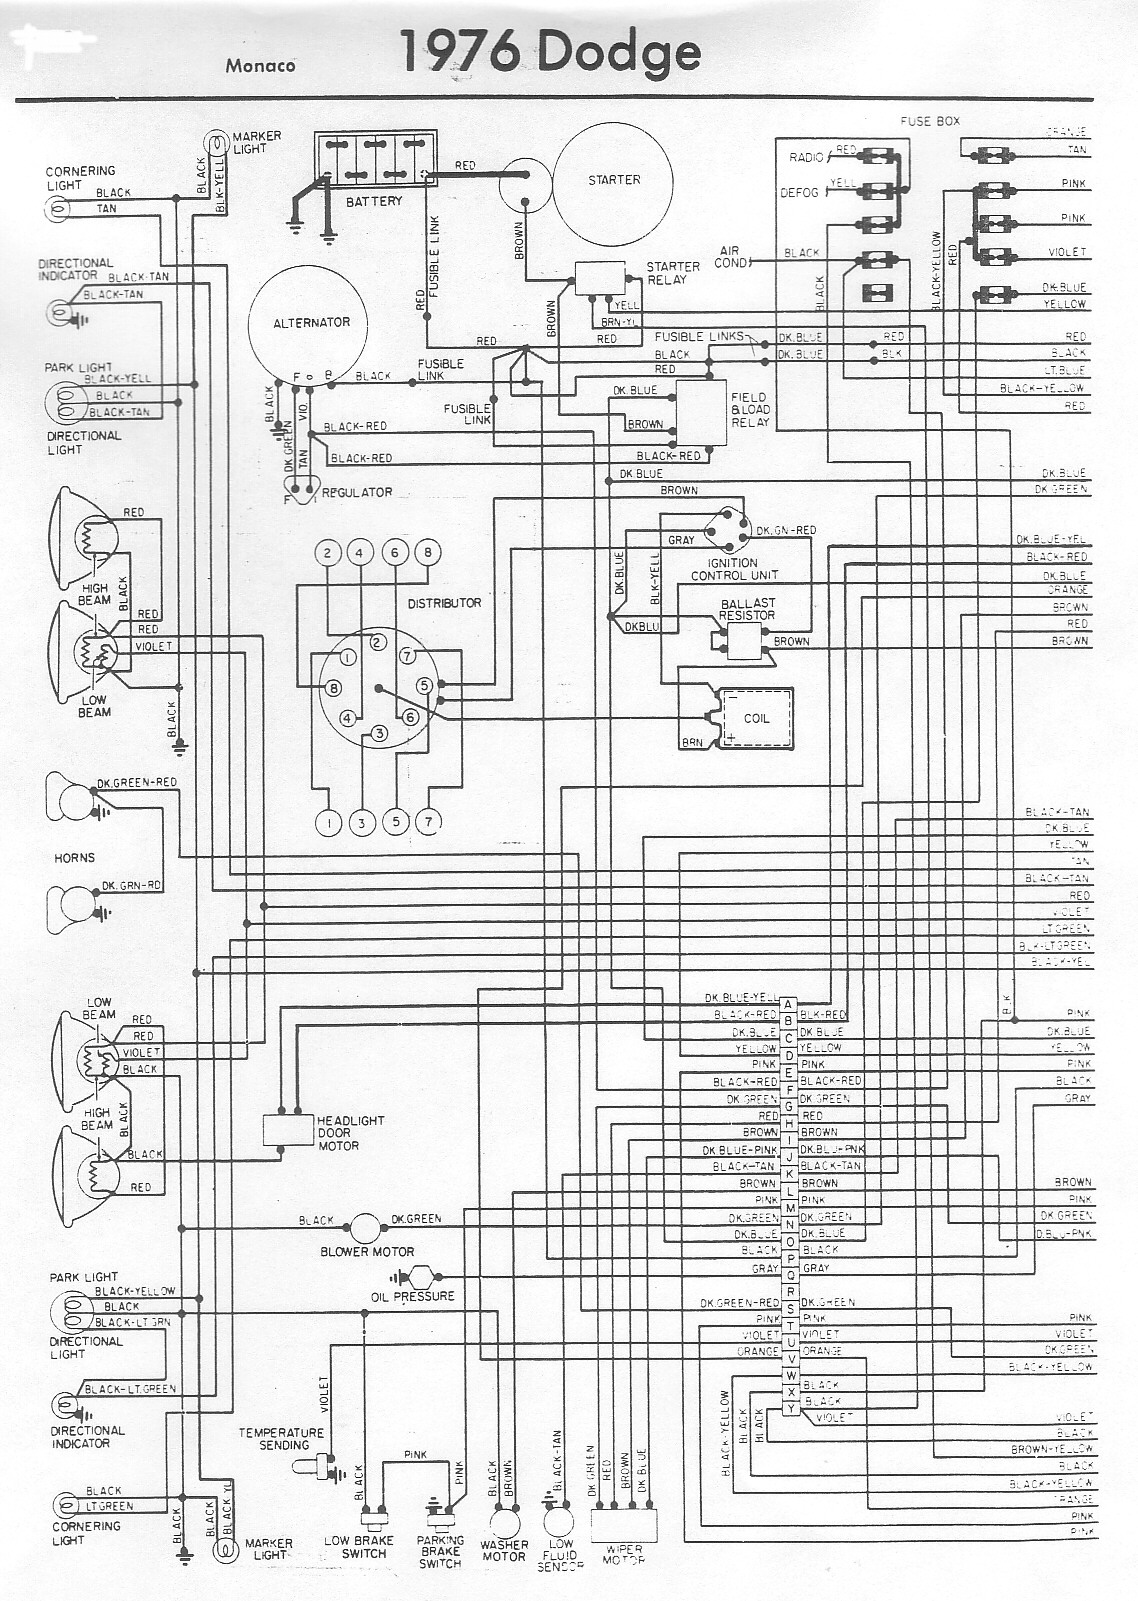 1978 dodge ignition wiring diagram 78 dodge truck distributor wiring diagram. 78. free printable wiring diagrams database 1978 dodge ramcharger wiring diagram